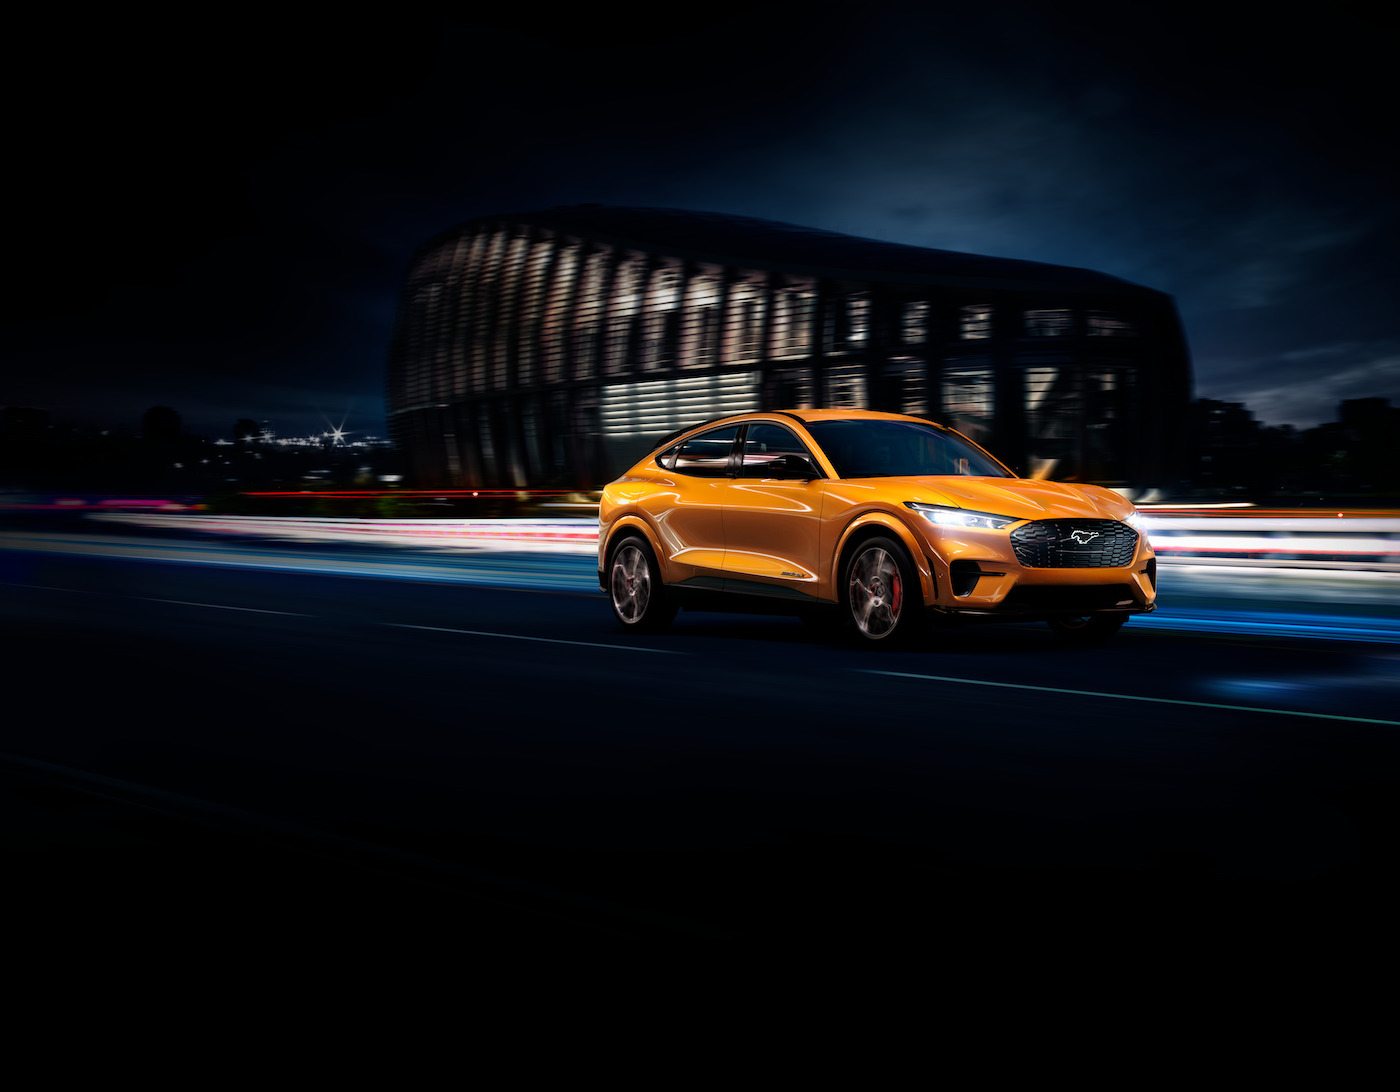 112-2021-ford-mustang-mach-e-cyber-orange-1.jpg